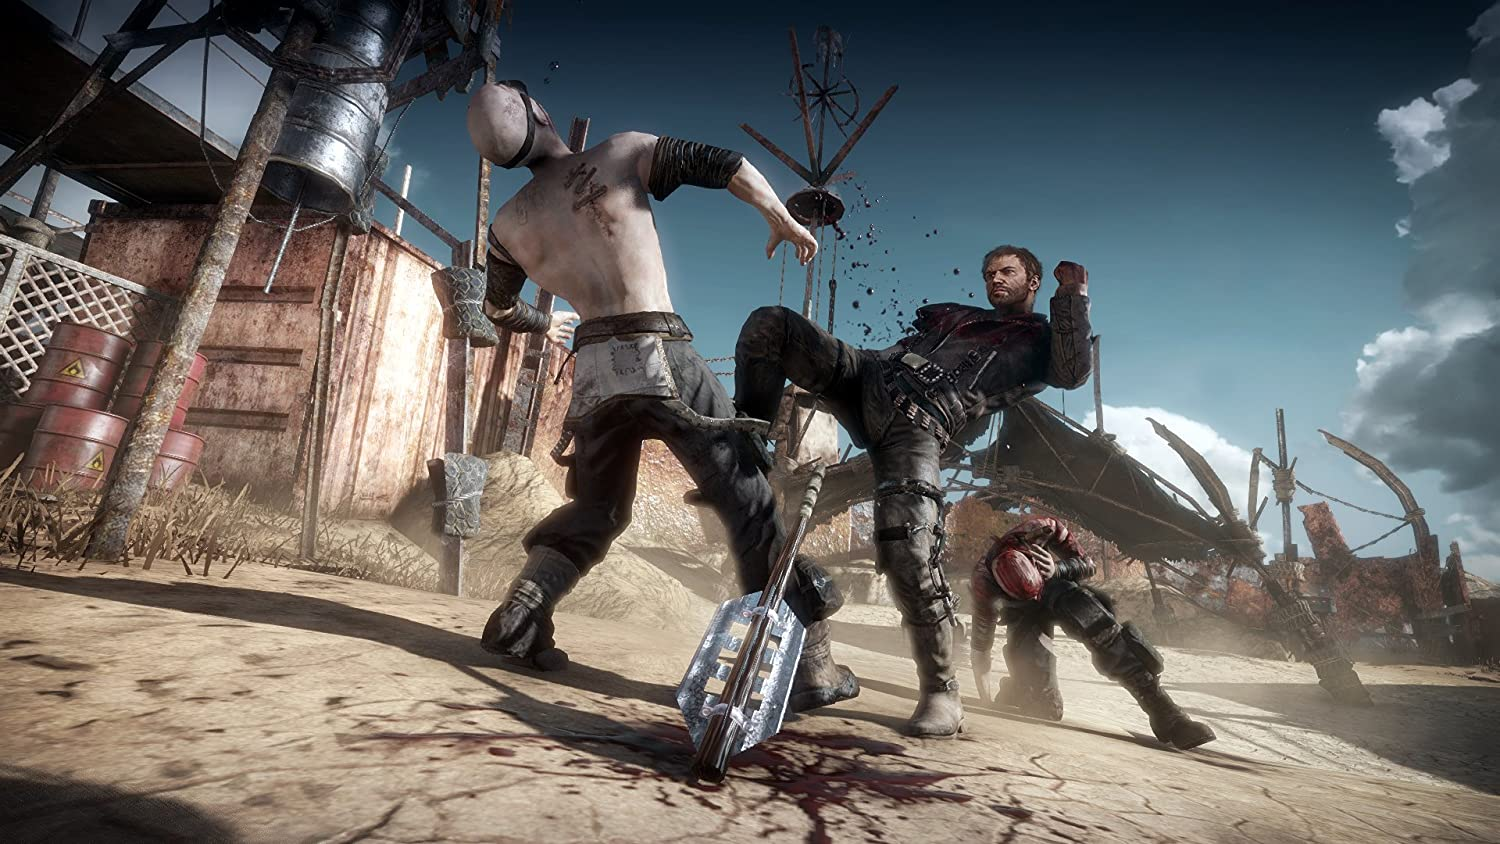 New Mad Max Screens Emerge From the Wasteland